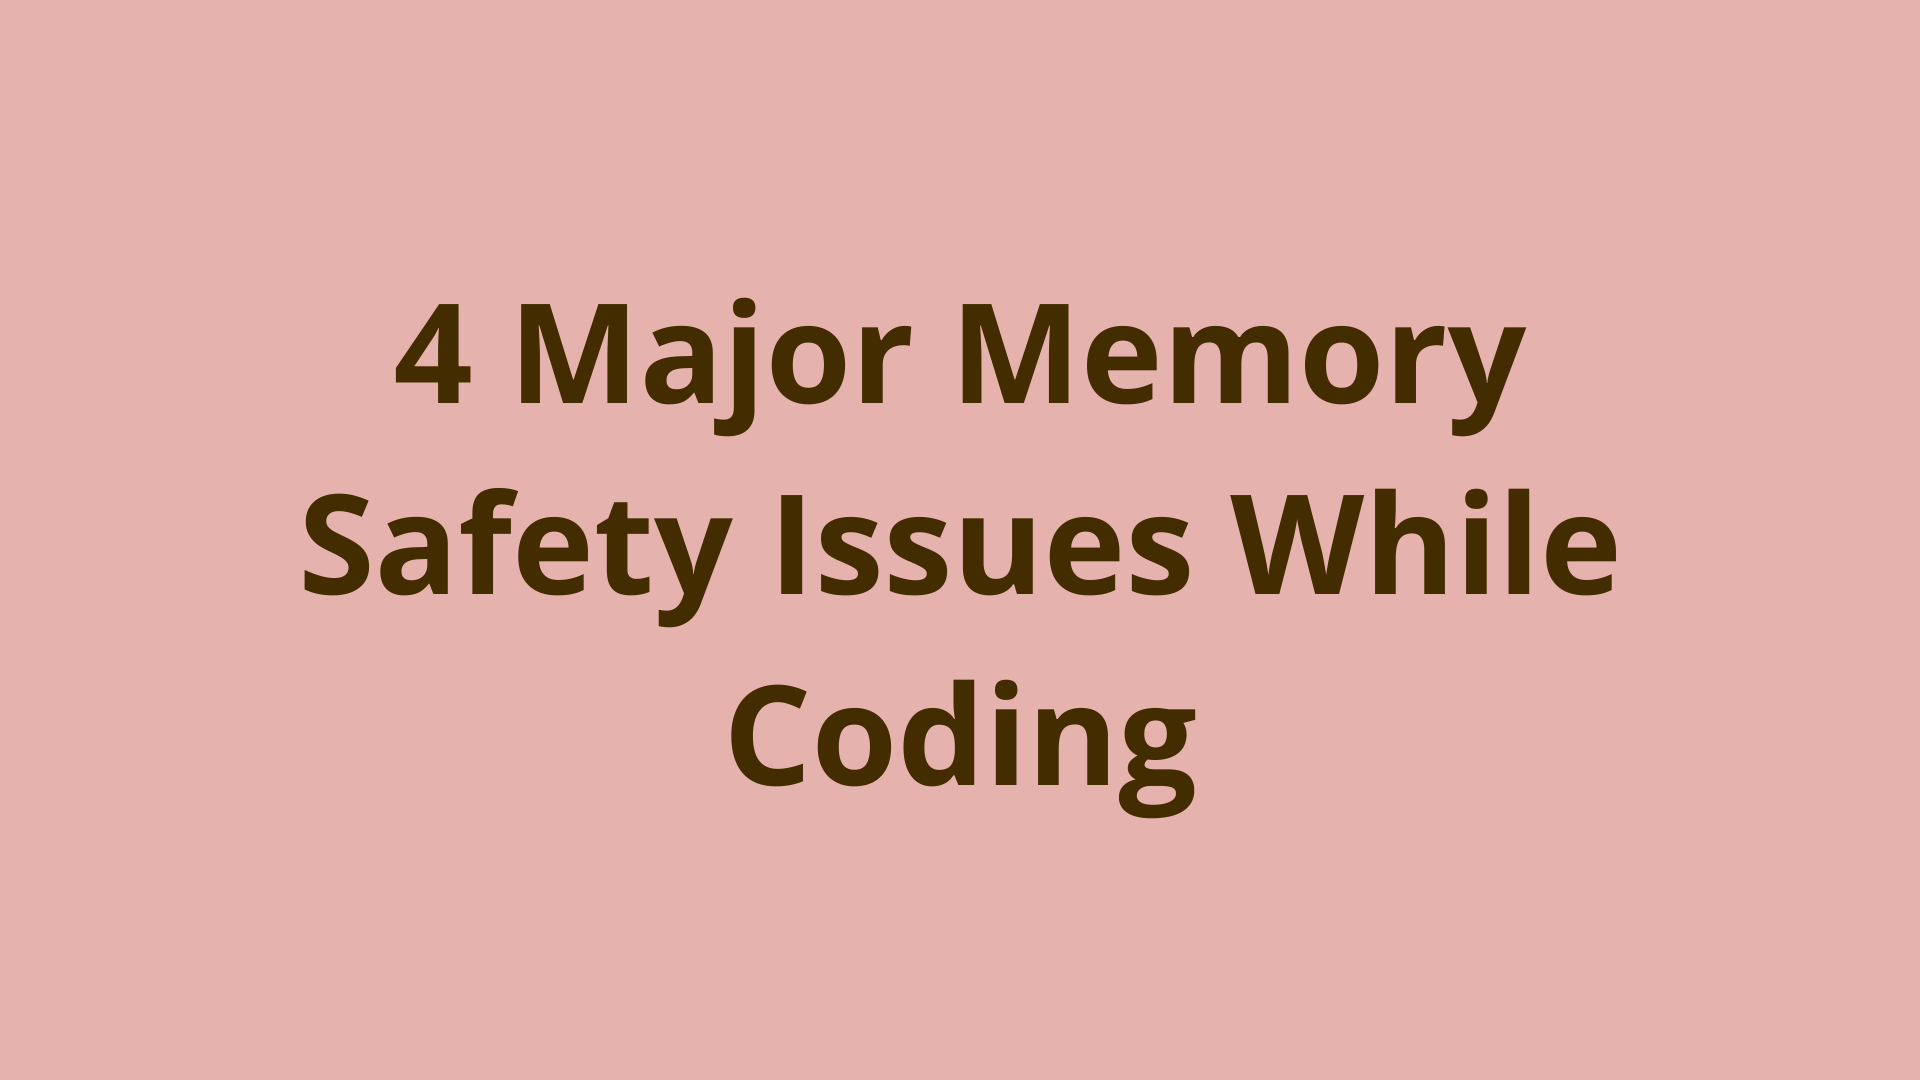 Image of 4 major memory safety issues while coding - causes and solutions